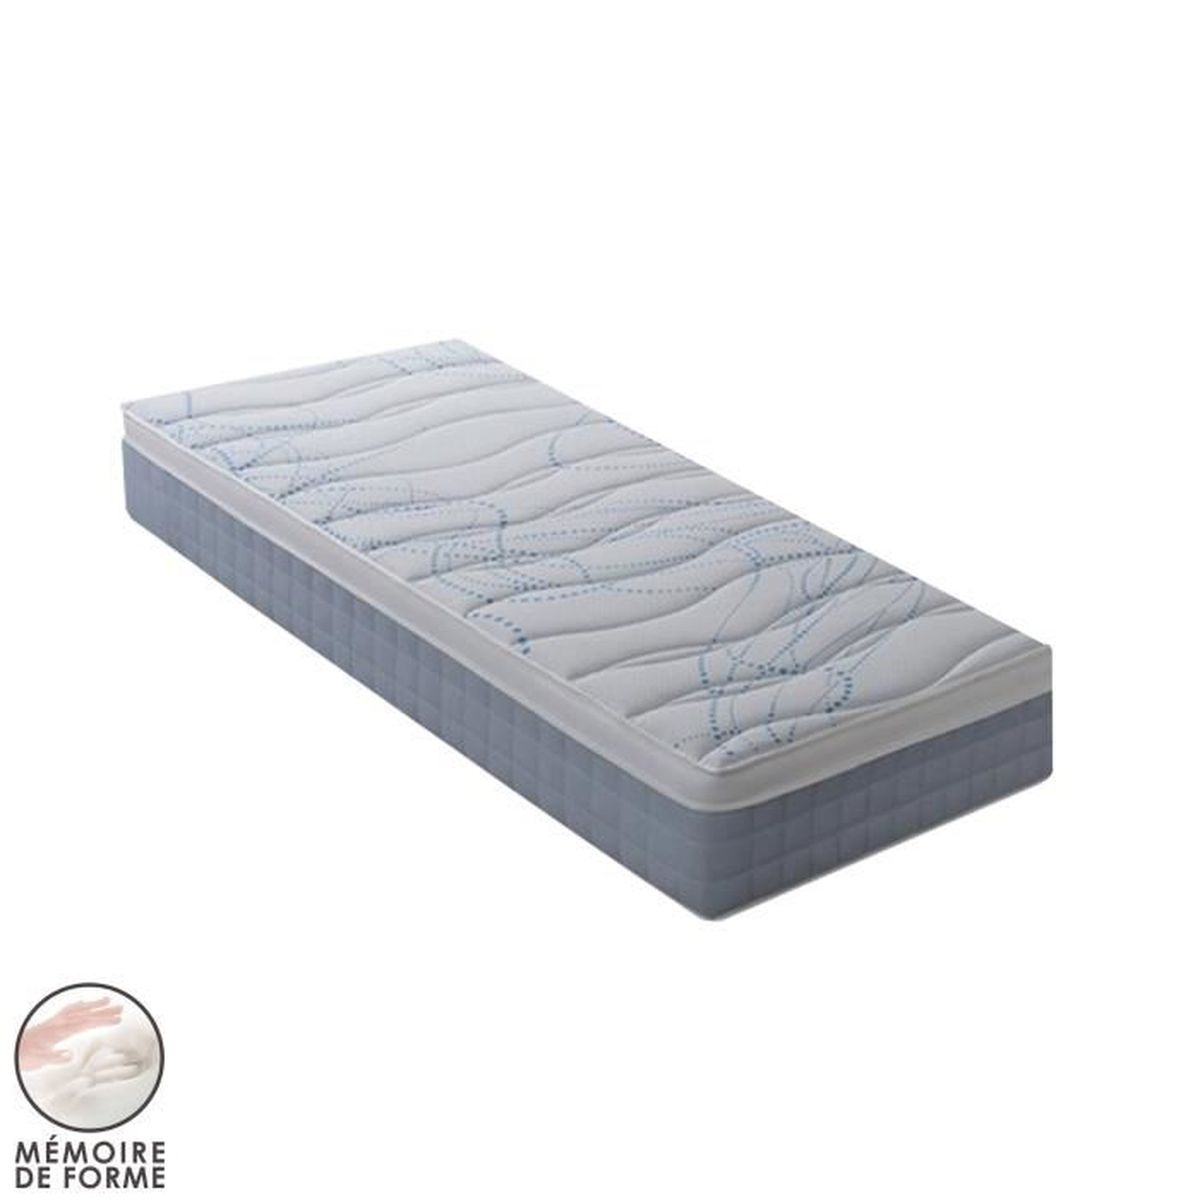 matelas m moire de forme 90x200 cm easypring achat vente matelas cdiscount. Black Bedroom Furniture Sets. Home Design Ideas